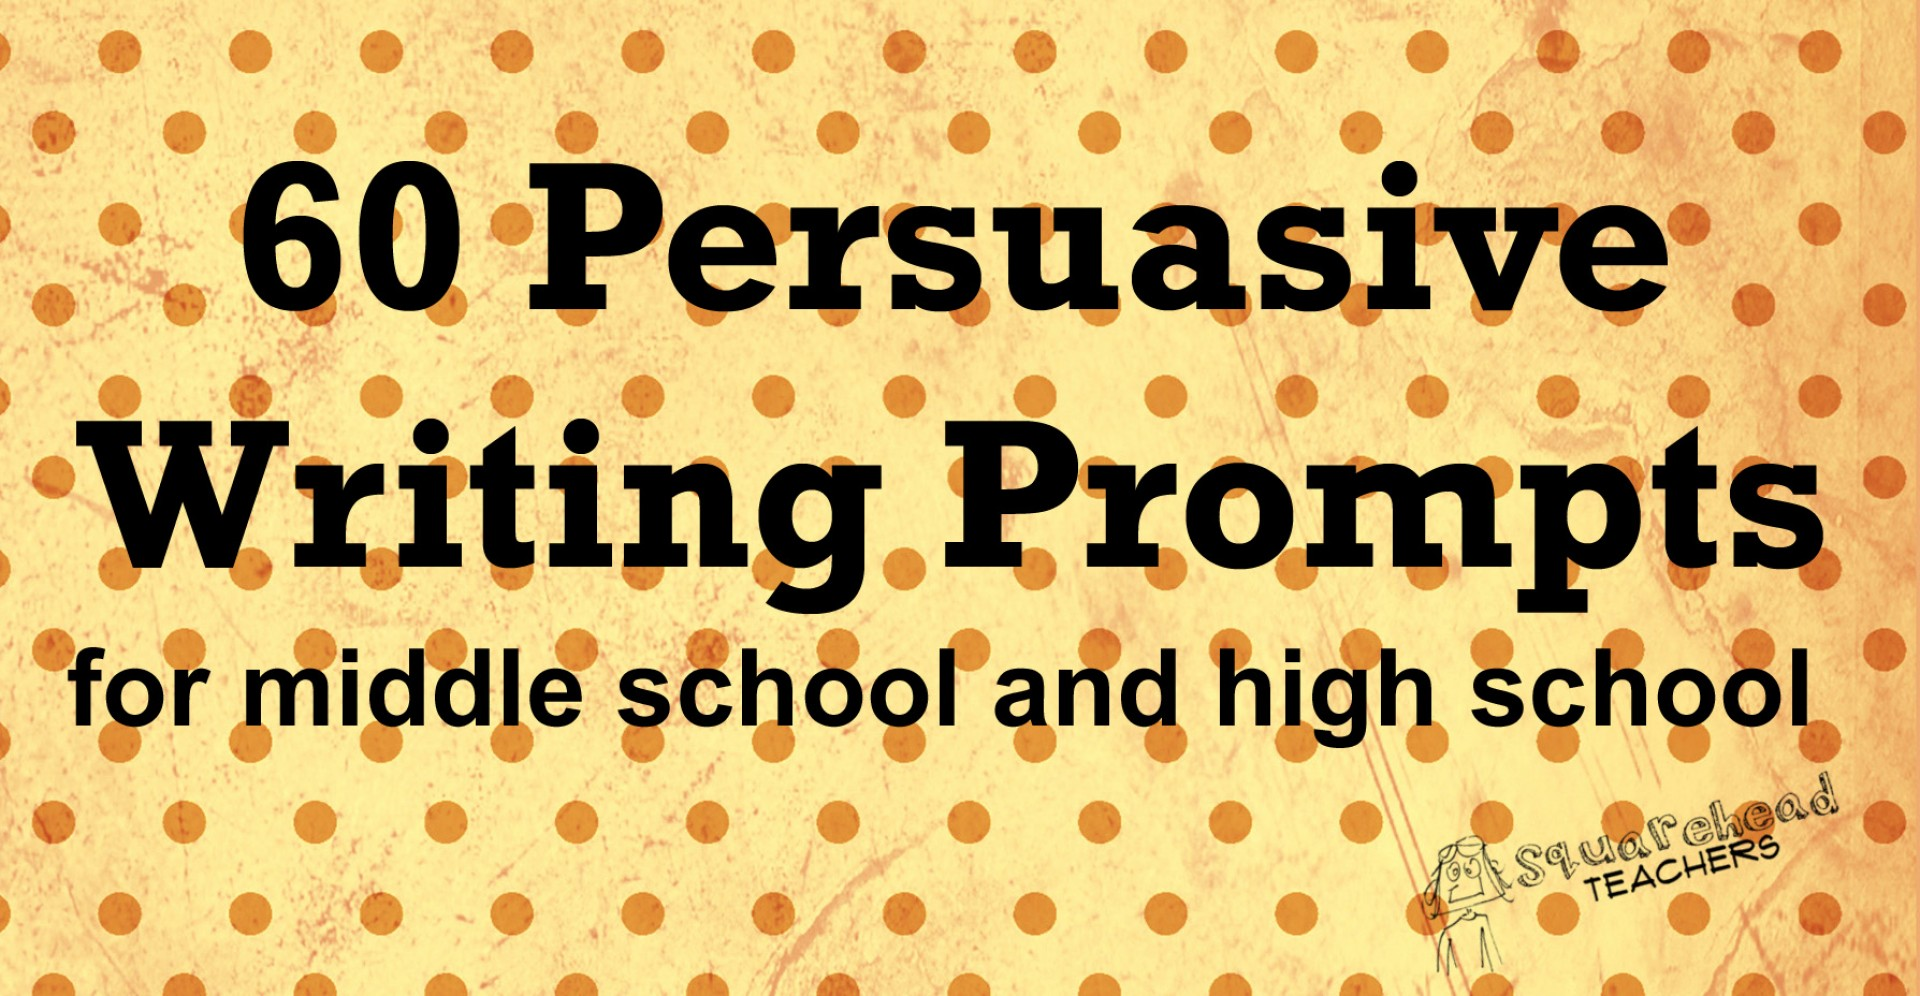 001 Pers Writing Prompts For Ms And Hs Research Paper Persuasive Topics Middle Incredible School High Essay Activities 1920